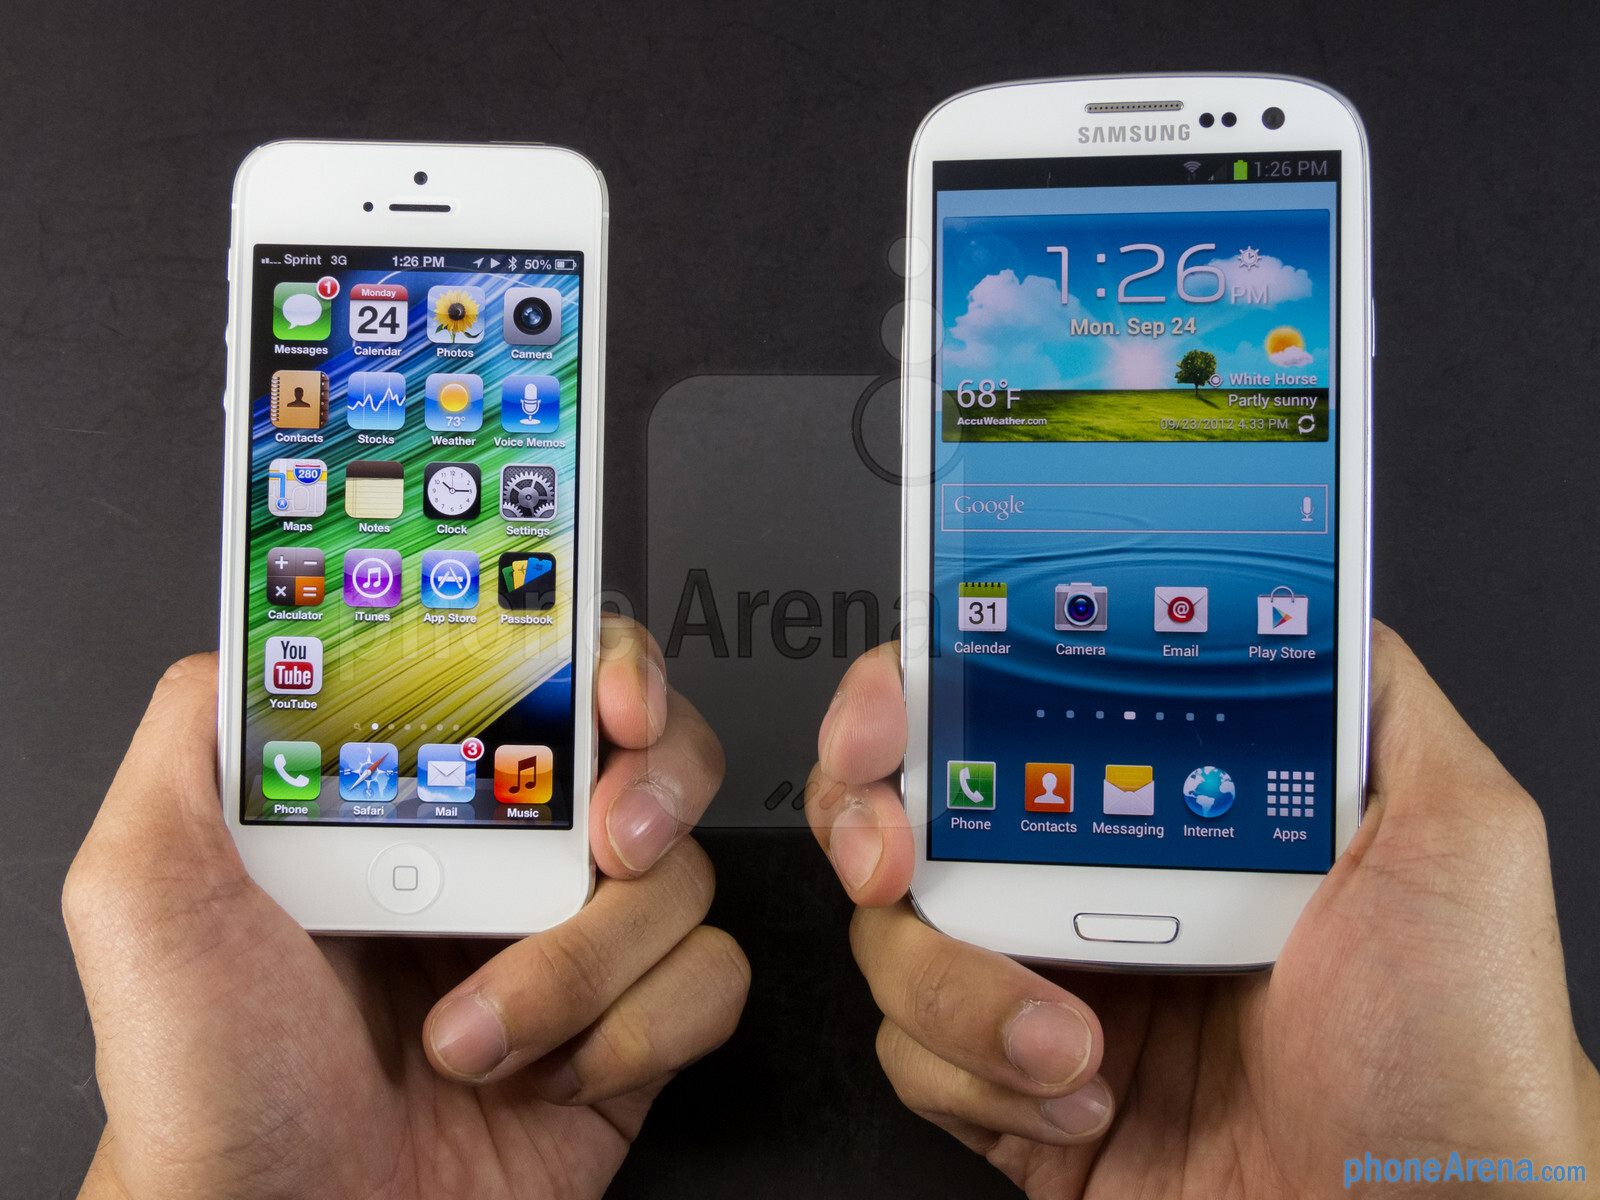 The apple iphone 5 left and the samsung galaxy s iii right